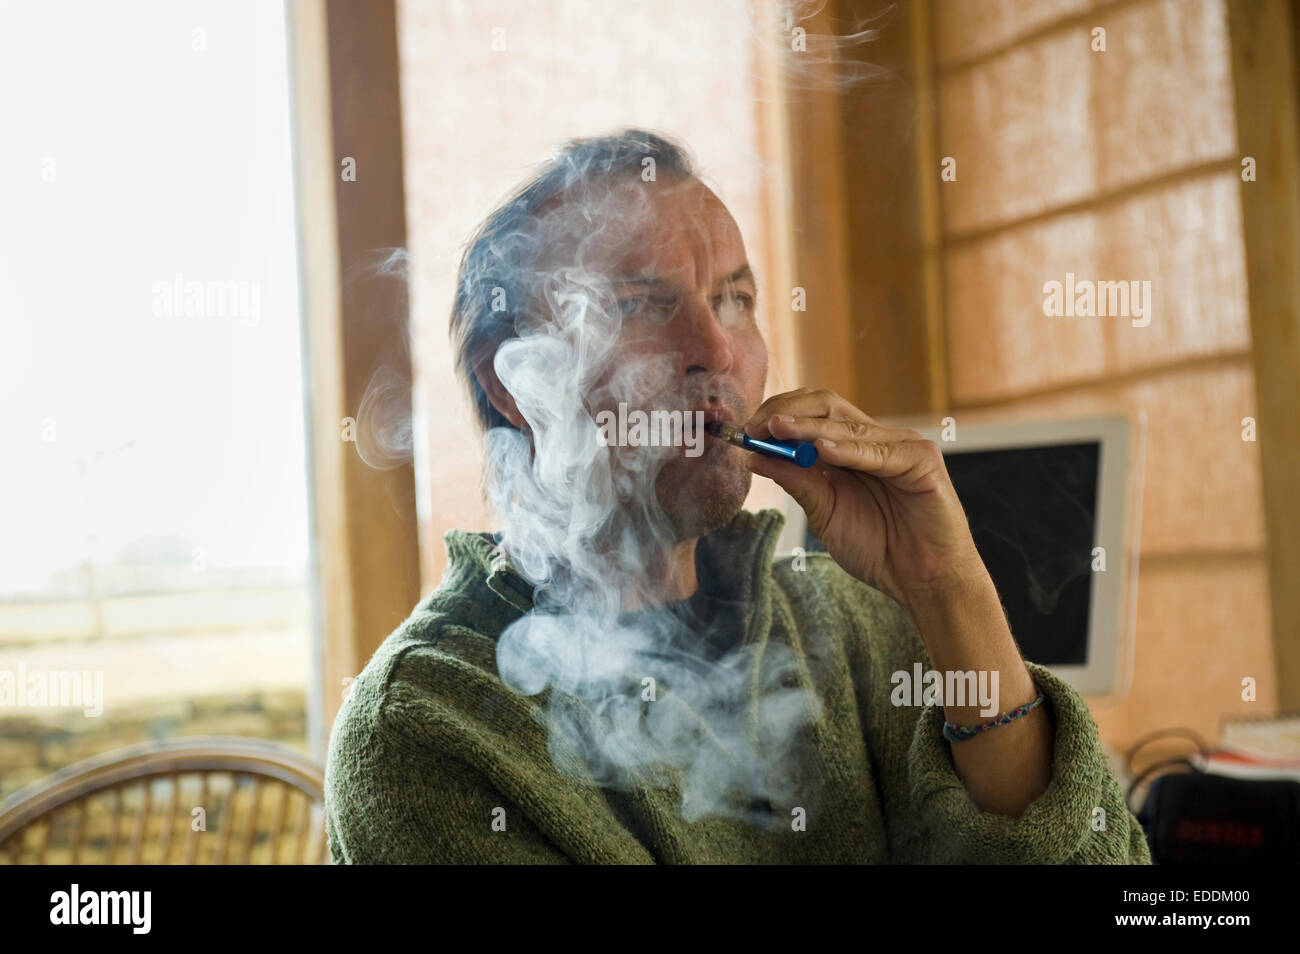 A man using an electronic cigarette, vaping. Stock Photo